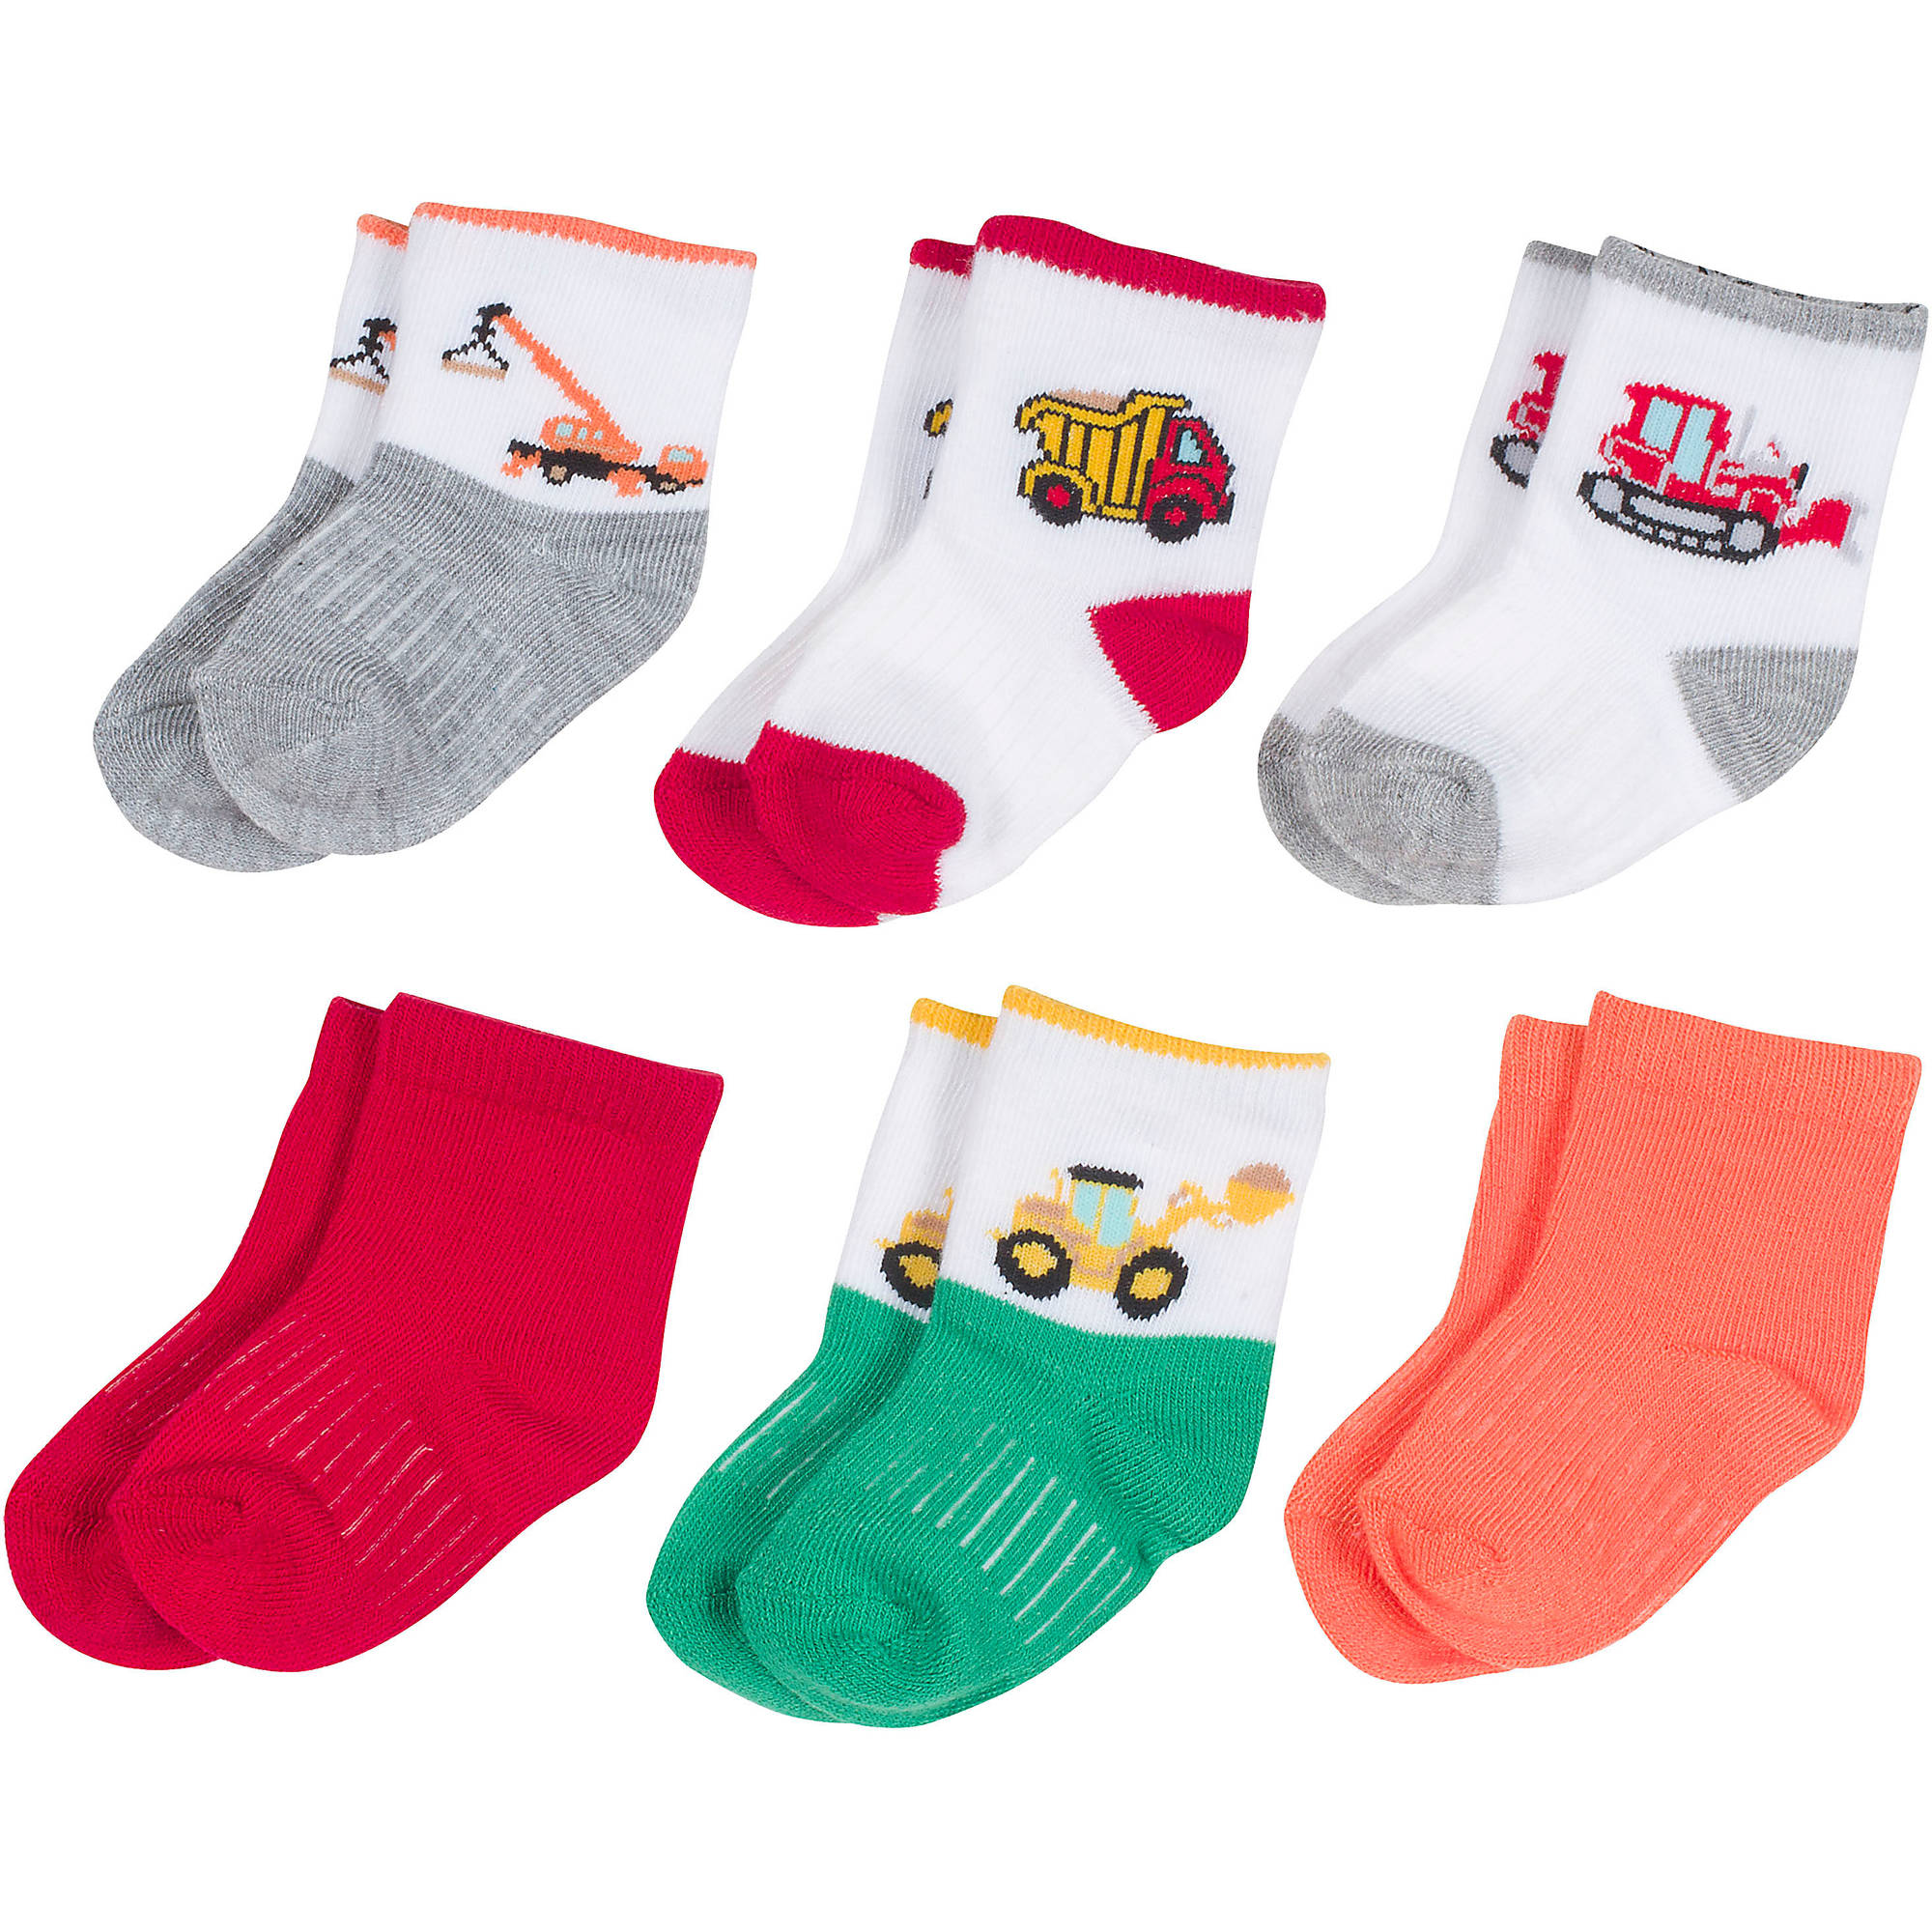 Growing Socks by Peds, Boy Infant, Construction Vehicle, 6 Pairs